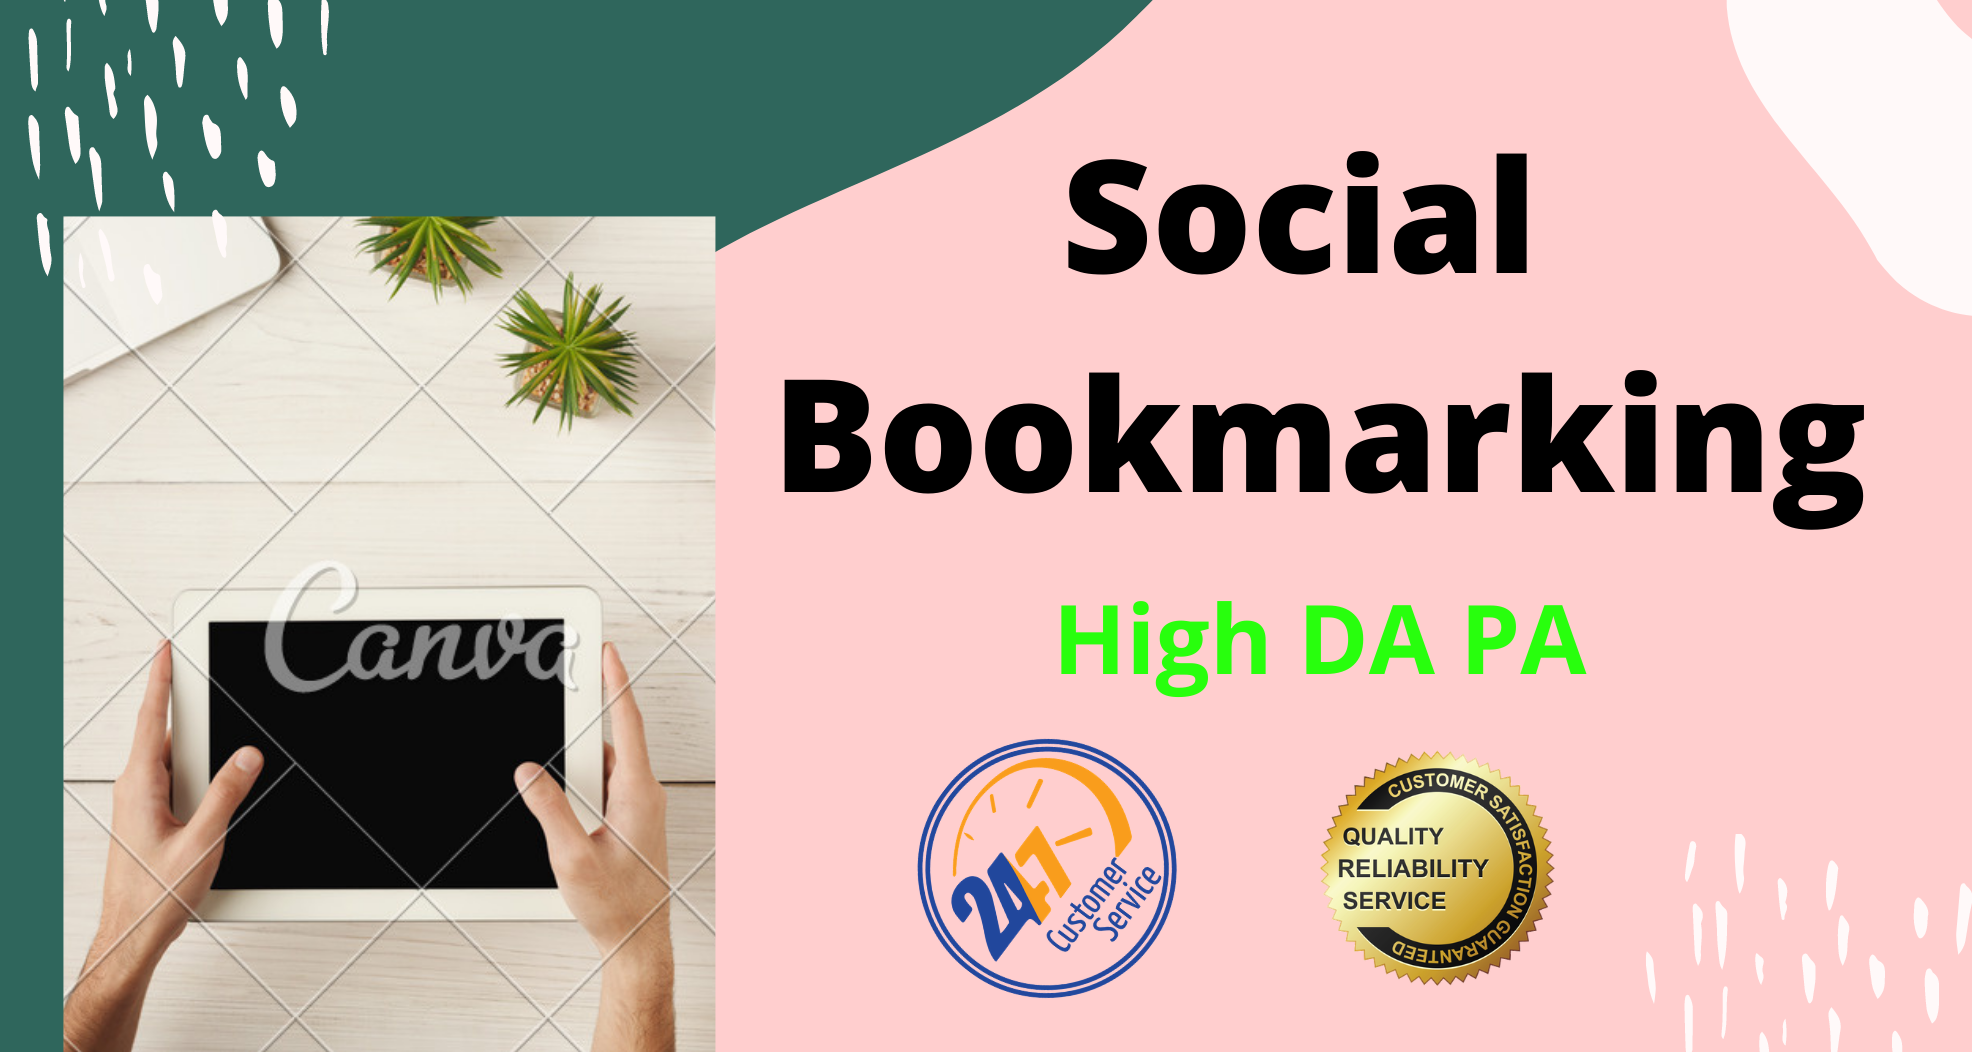 I Will Manually create 30 Social Bookmarking by using excessive PA social sites